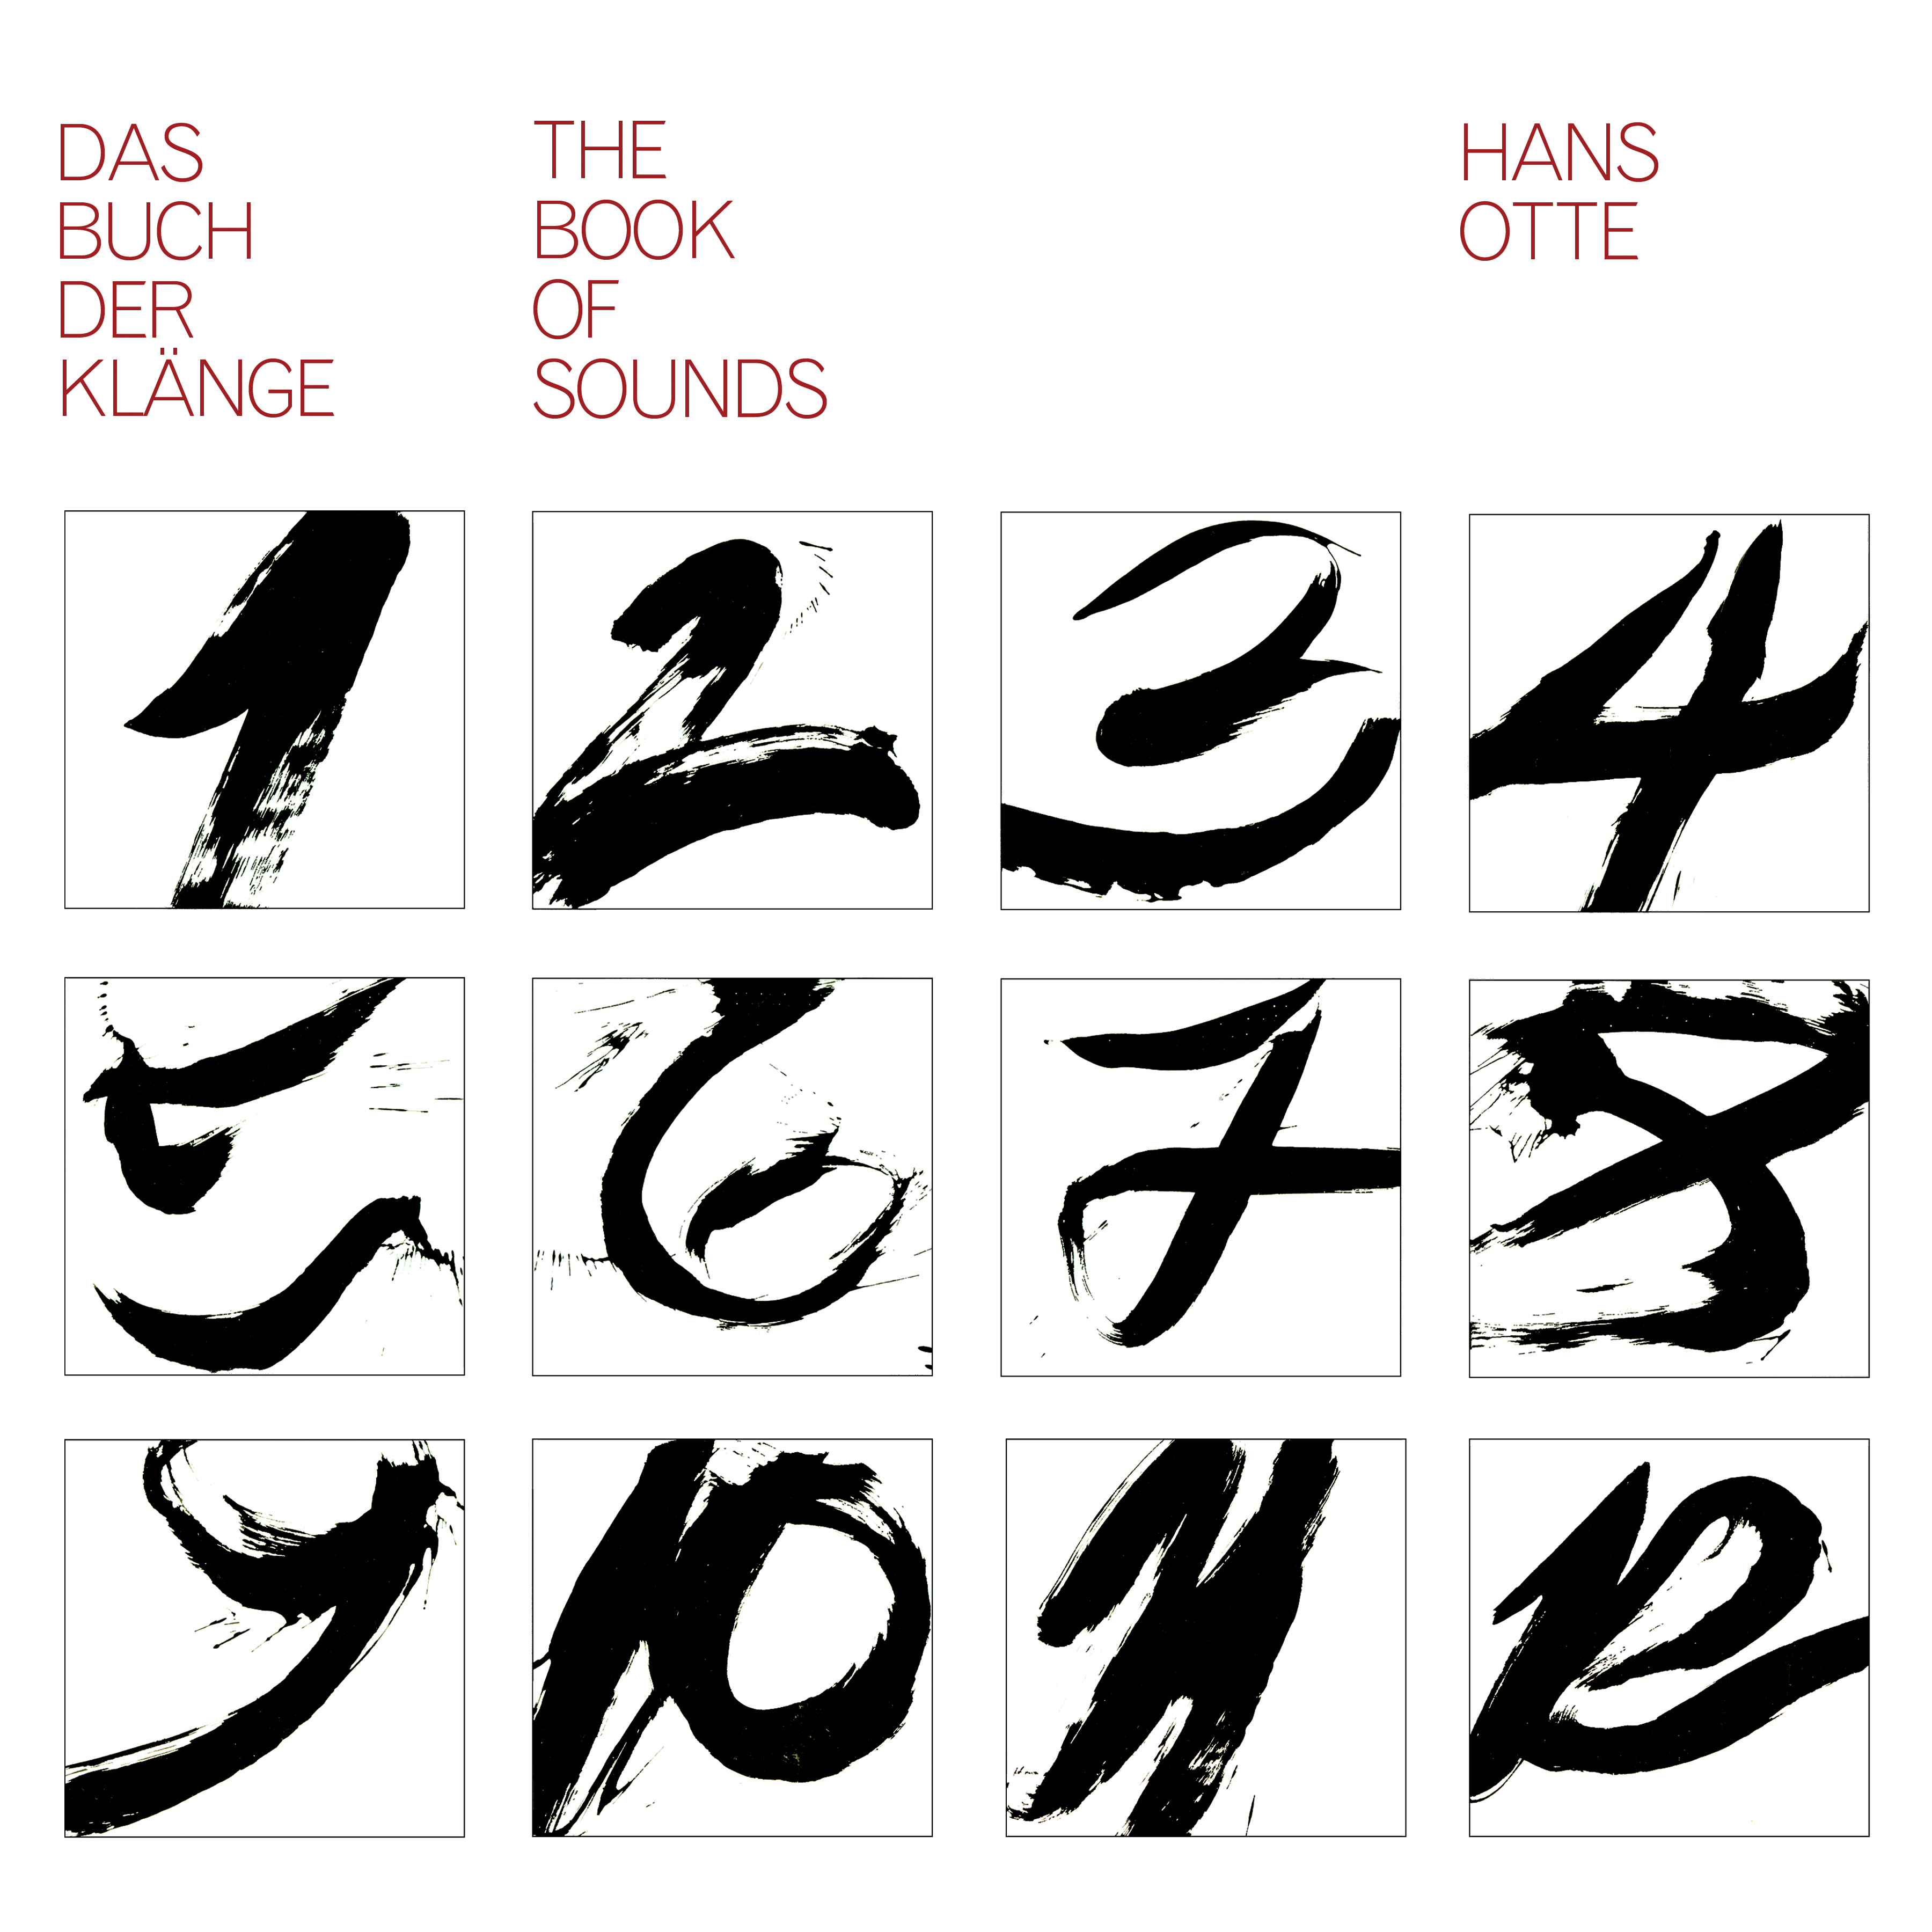 coverart_hansotte_thebookofsounds_dec14